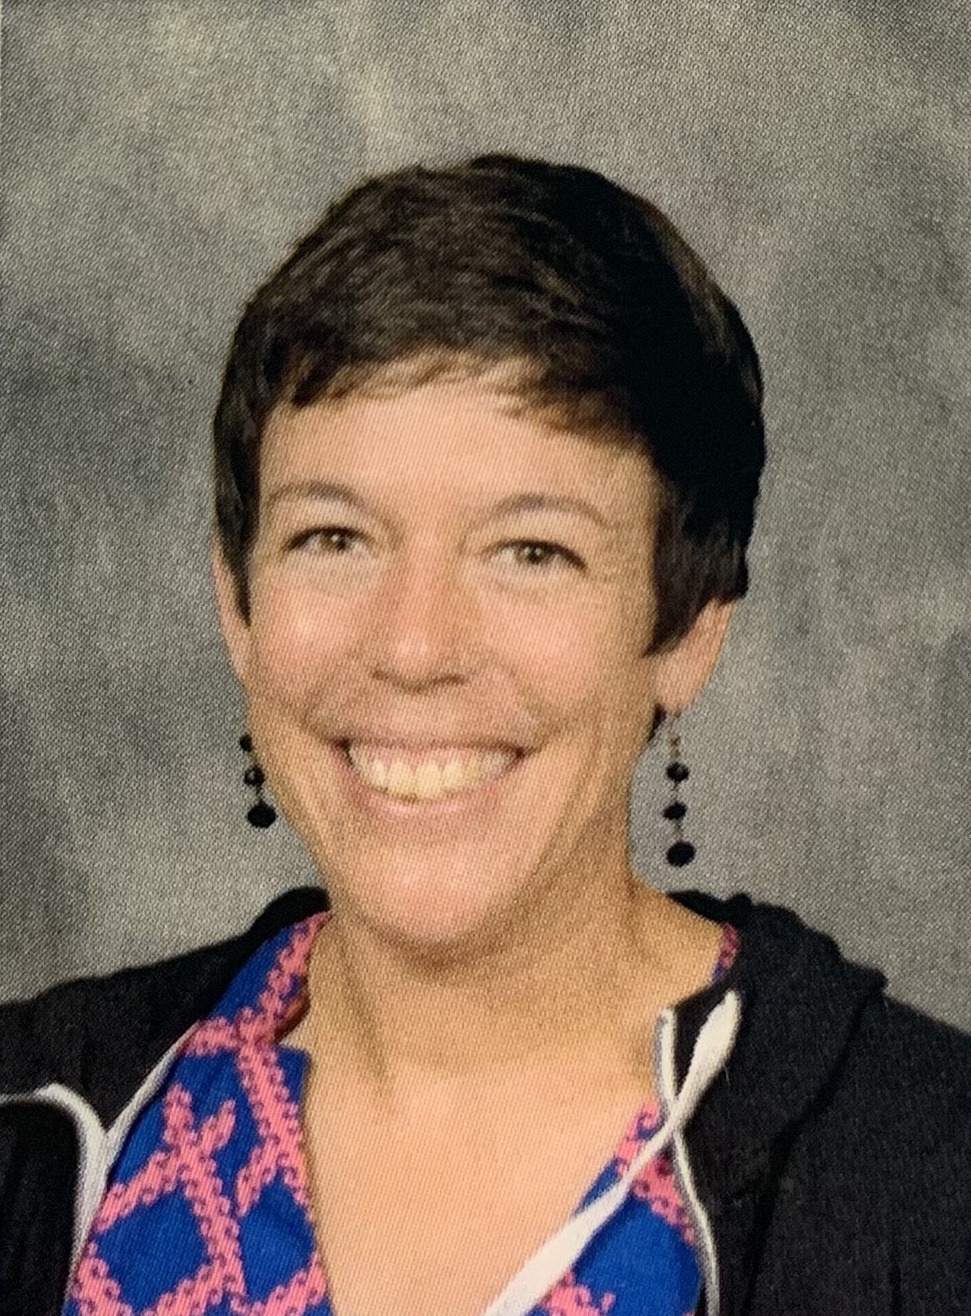 Erin Oliver - Erin Oliver is a math specialist for K-8 at Grand Isle School. She began her teaching career in New Orleans, Louisiana in 2007. Erin has focused on intervention because her passion is helping struggling learners build confidence and understanding. For the past 6 years, she has worked as an instructional interventionist and instructional coach in both New Orleans and Vermont. She supports teachers in analyzing student work, planning math menus, co-teaching, and providing intervention to small groups of students. For the past two years, Erin has been a part of the All Learner's Network working to change